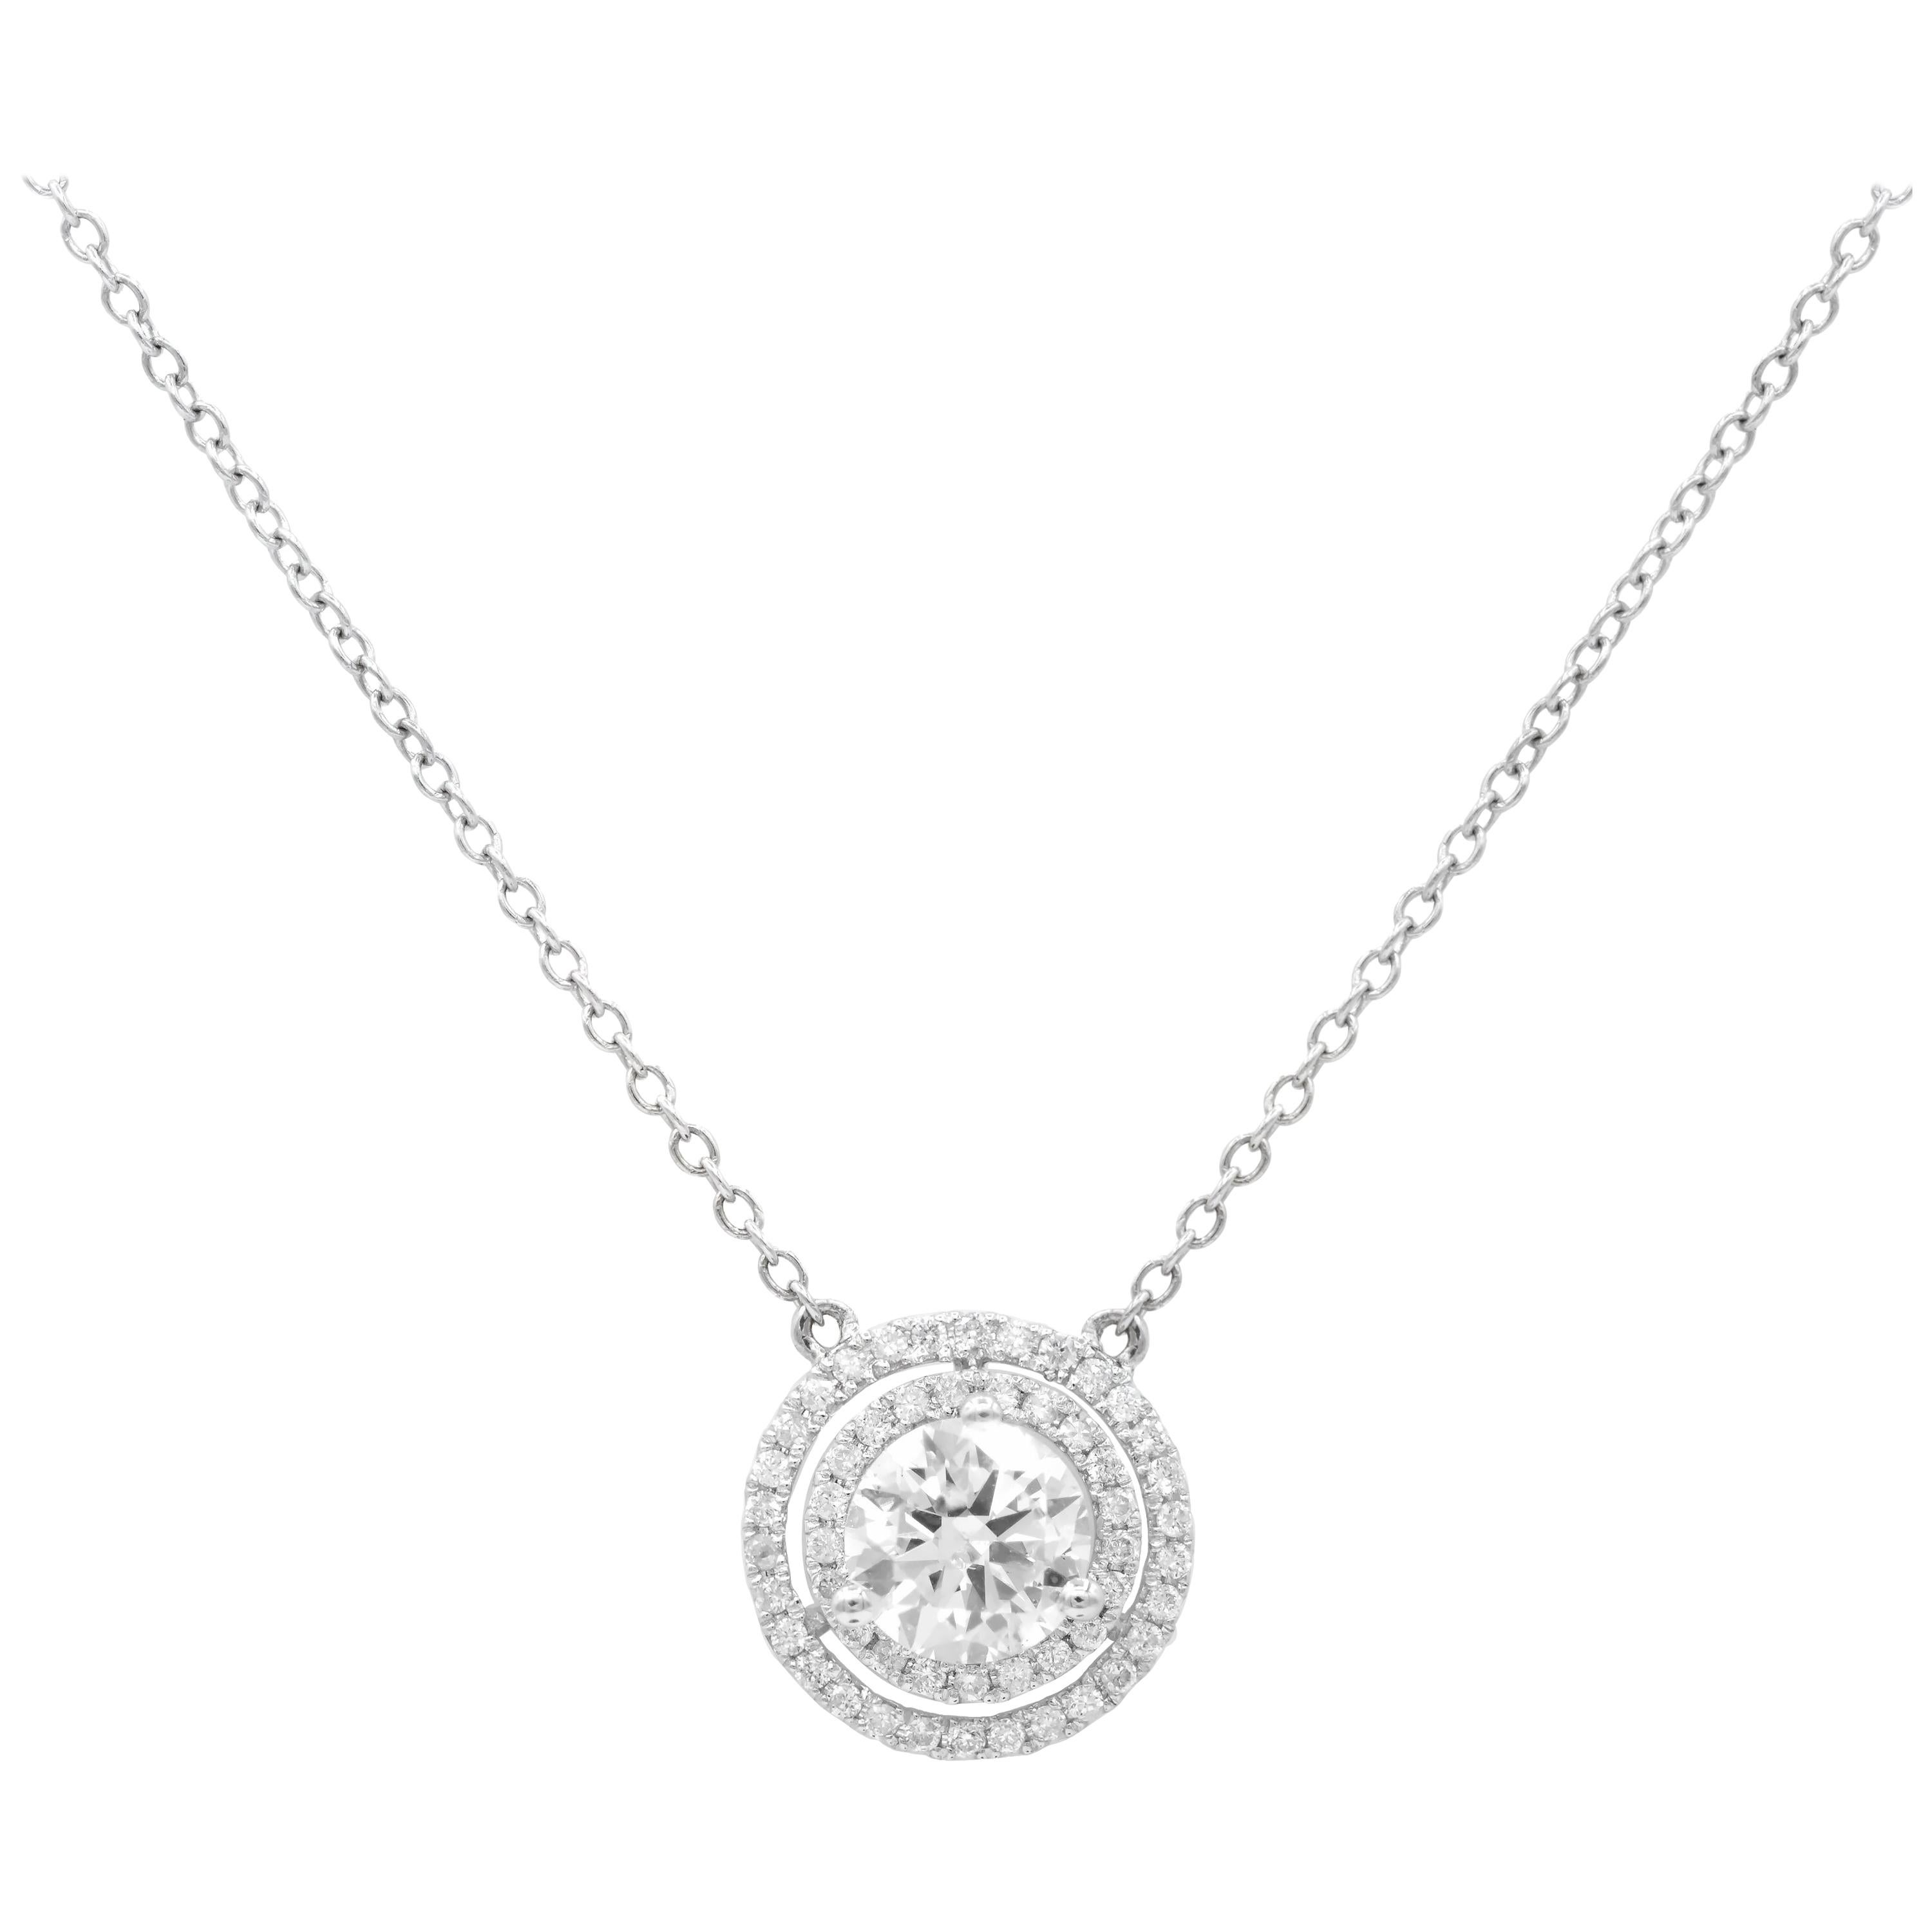 e405adb6b Diamond, Vintage and Antique Necklaces - 20,279 For Sale at 1stdibs